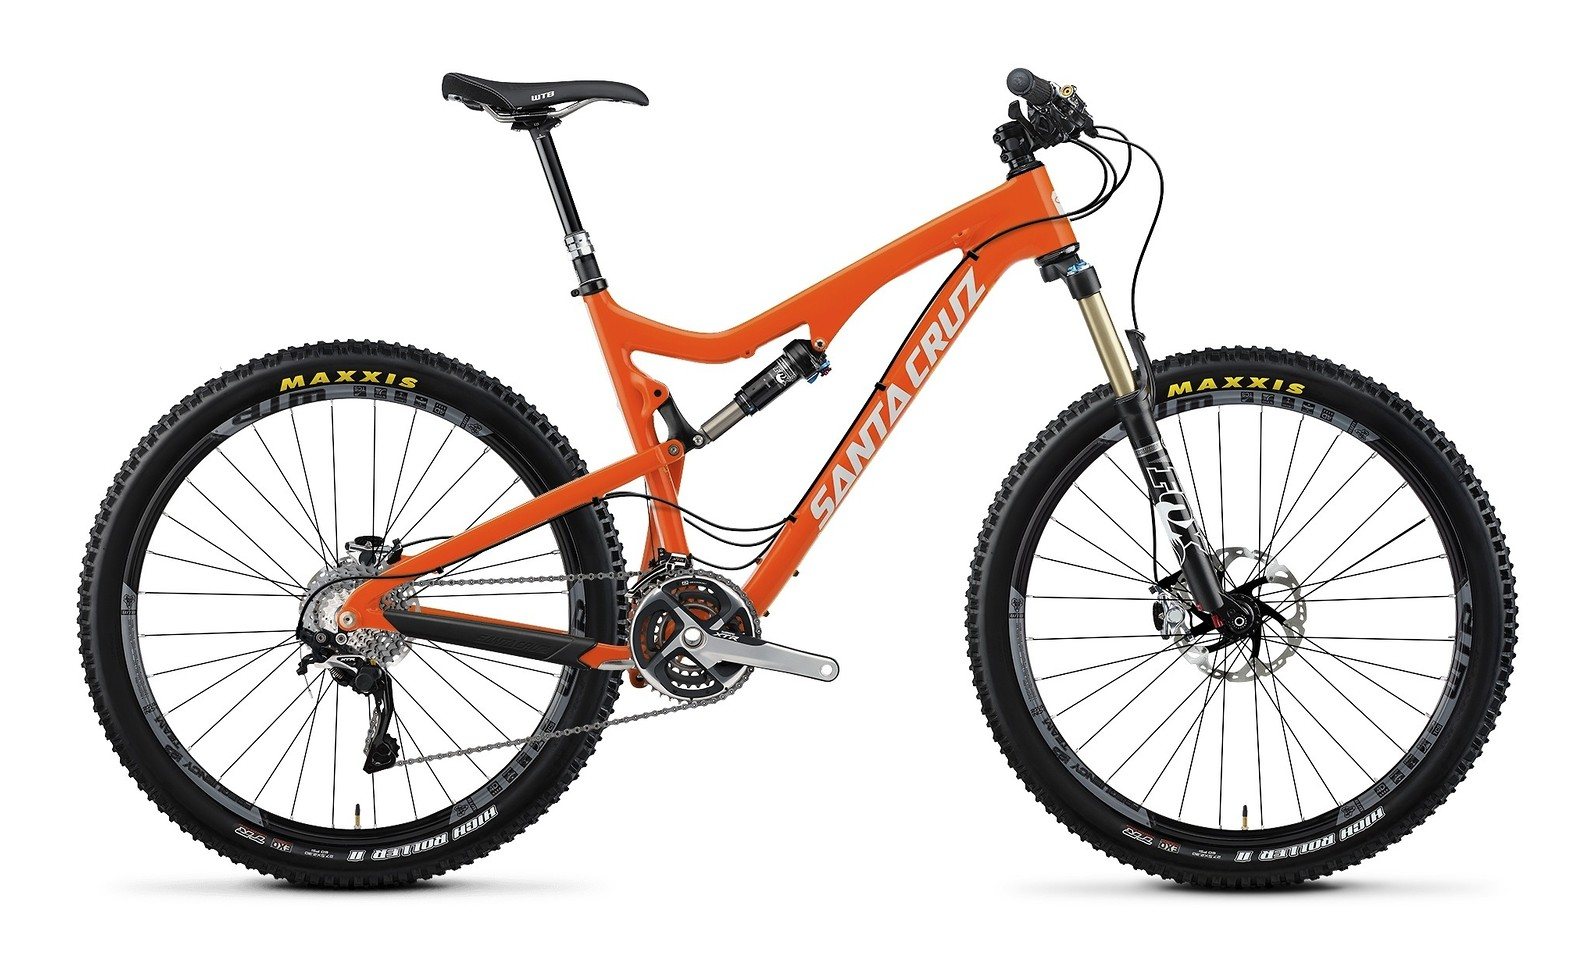 2014 Santa Cruz 5010 Carbon XTR AM 27.5 Bike 2014 Santa Cruz Solo Carbon XTR AM 27.5 - orange